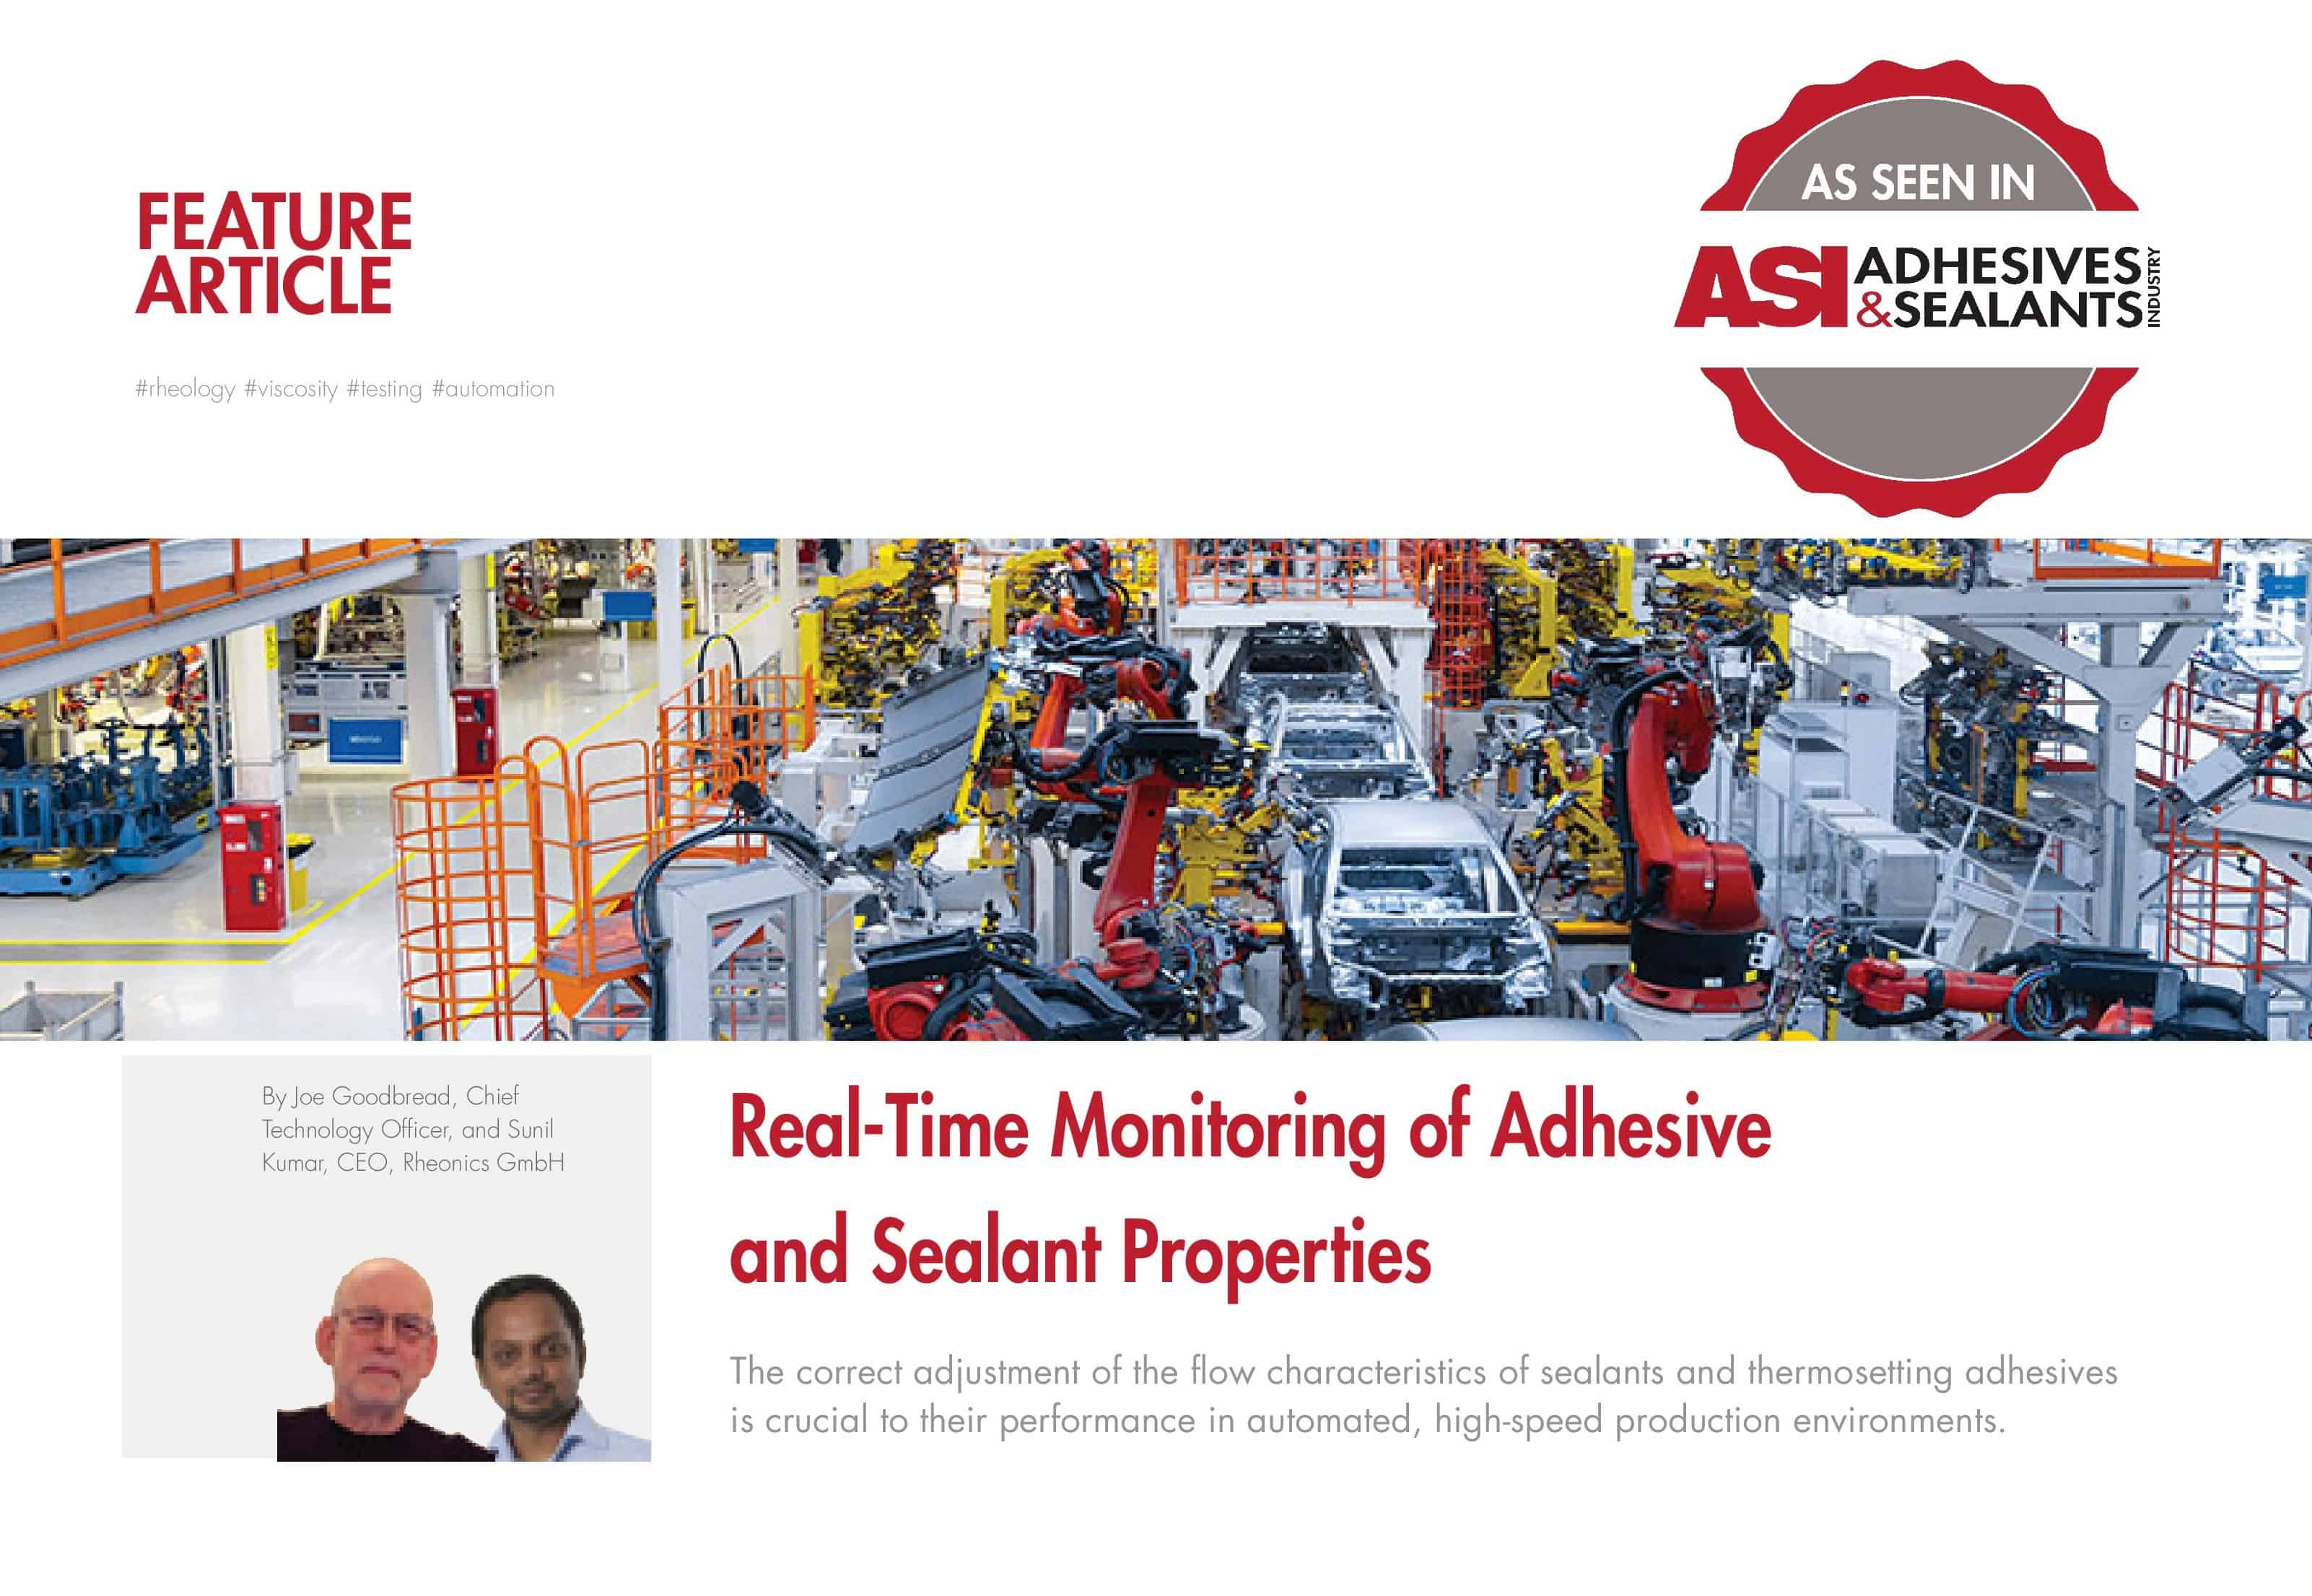 ASI Magazine features Rheonics' inline viscometer and CureTrack technology for real-time monitoring of adhesives and sealant properties